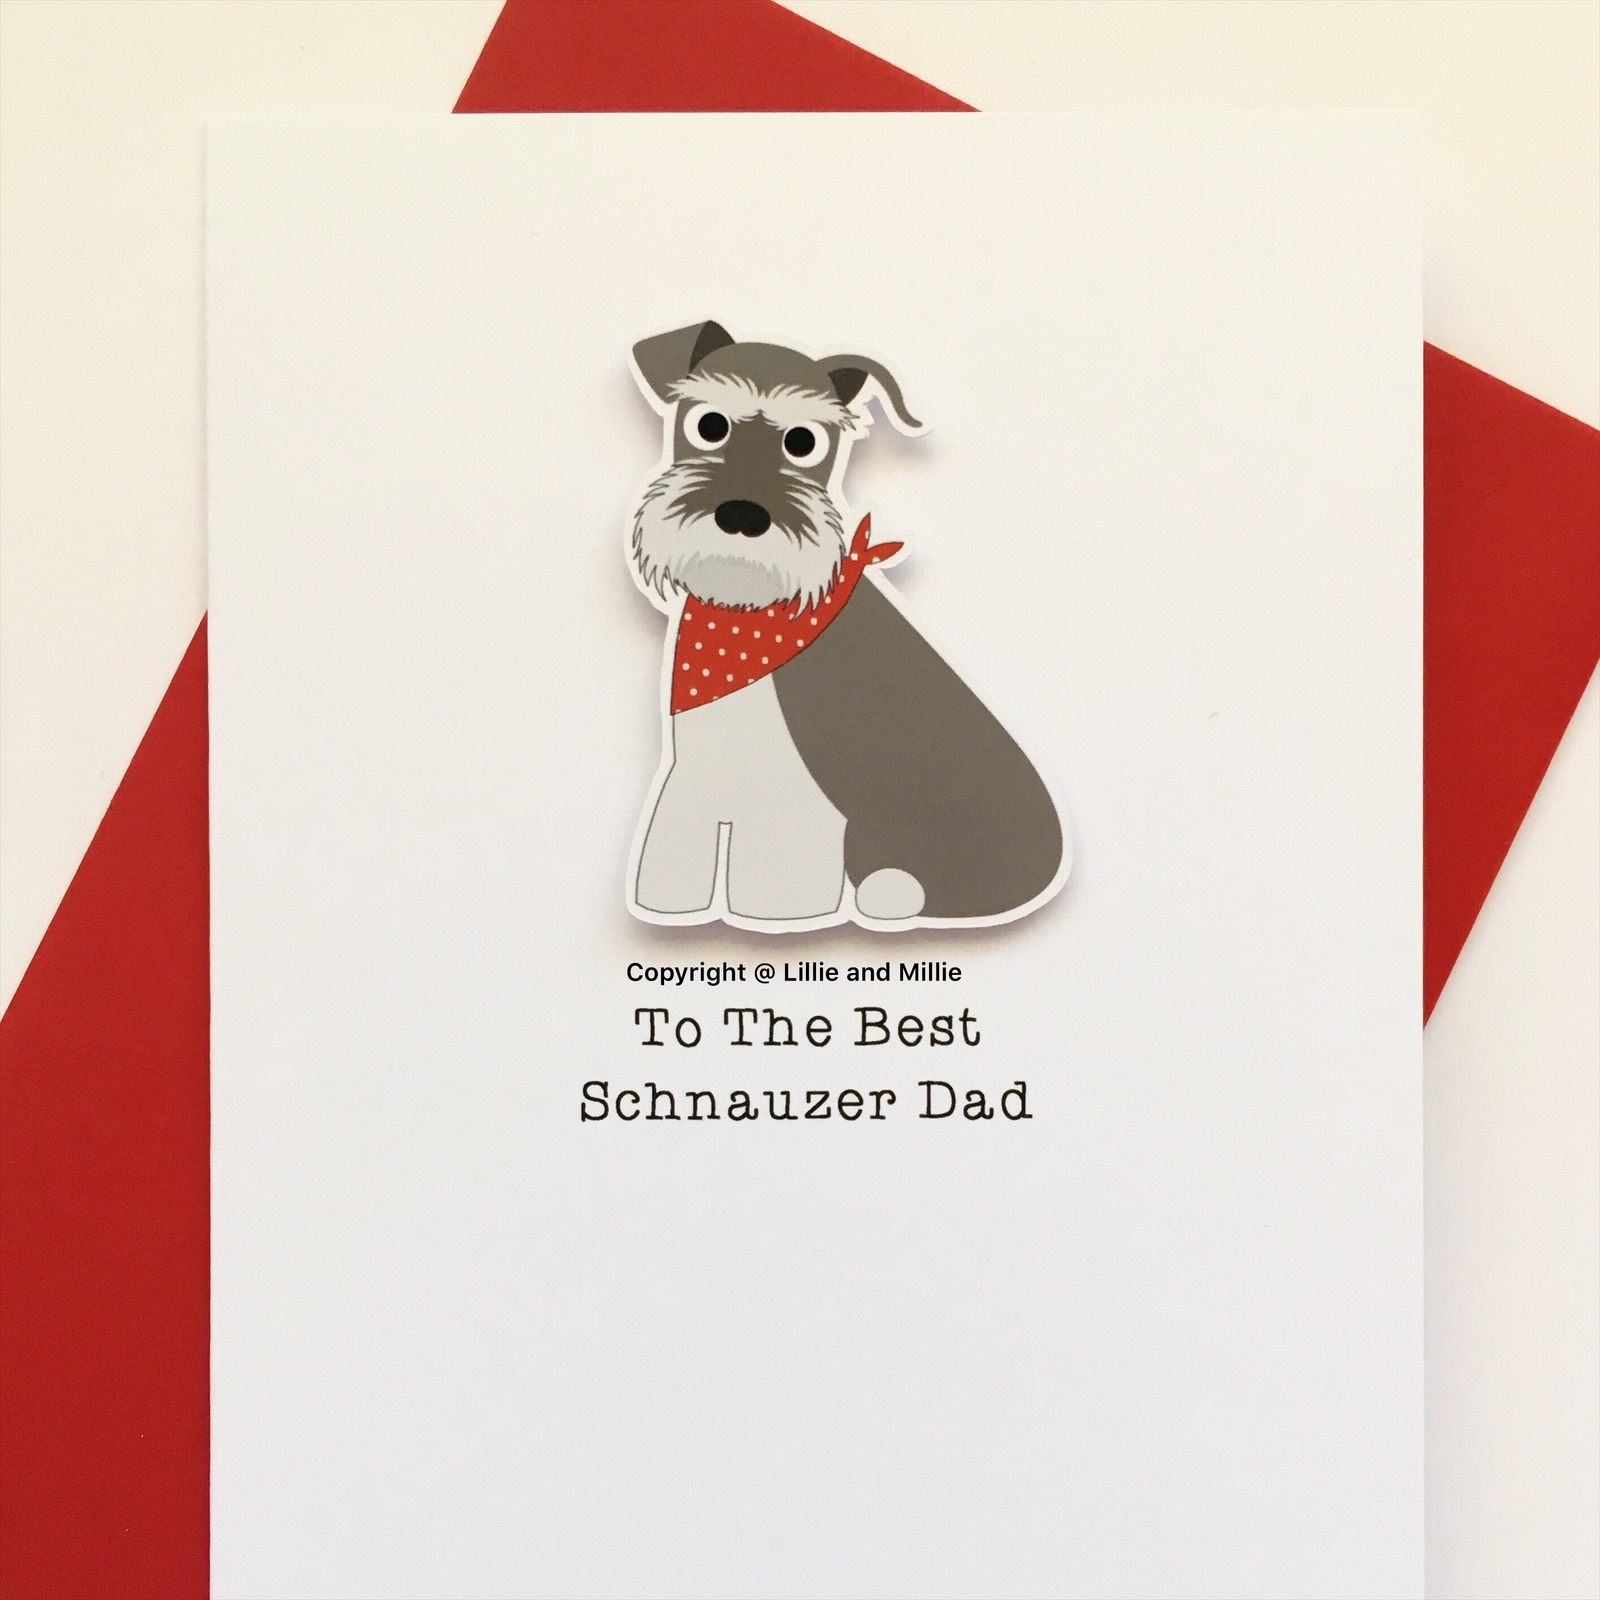 Precious Pooch To The Best Schnauzer Dad Salt and Pepper with Red Bandana Card